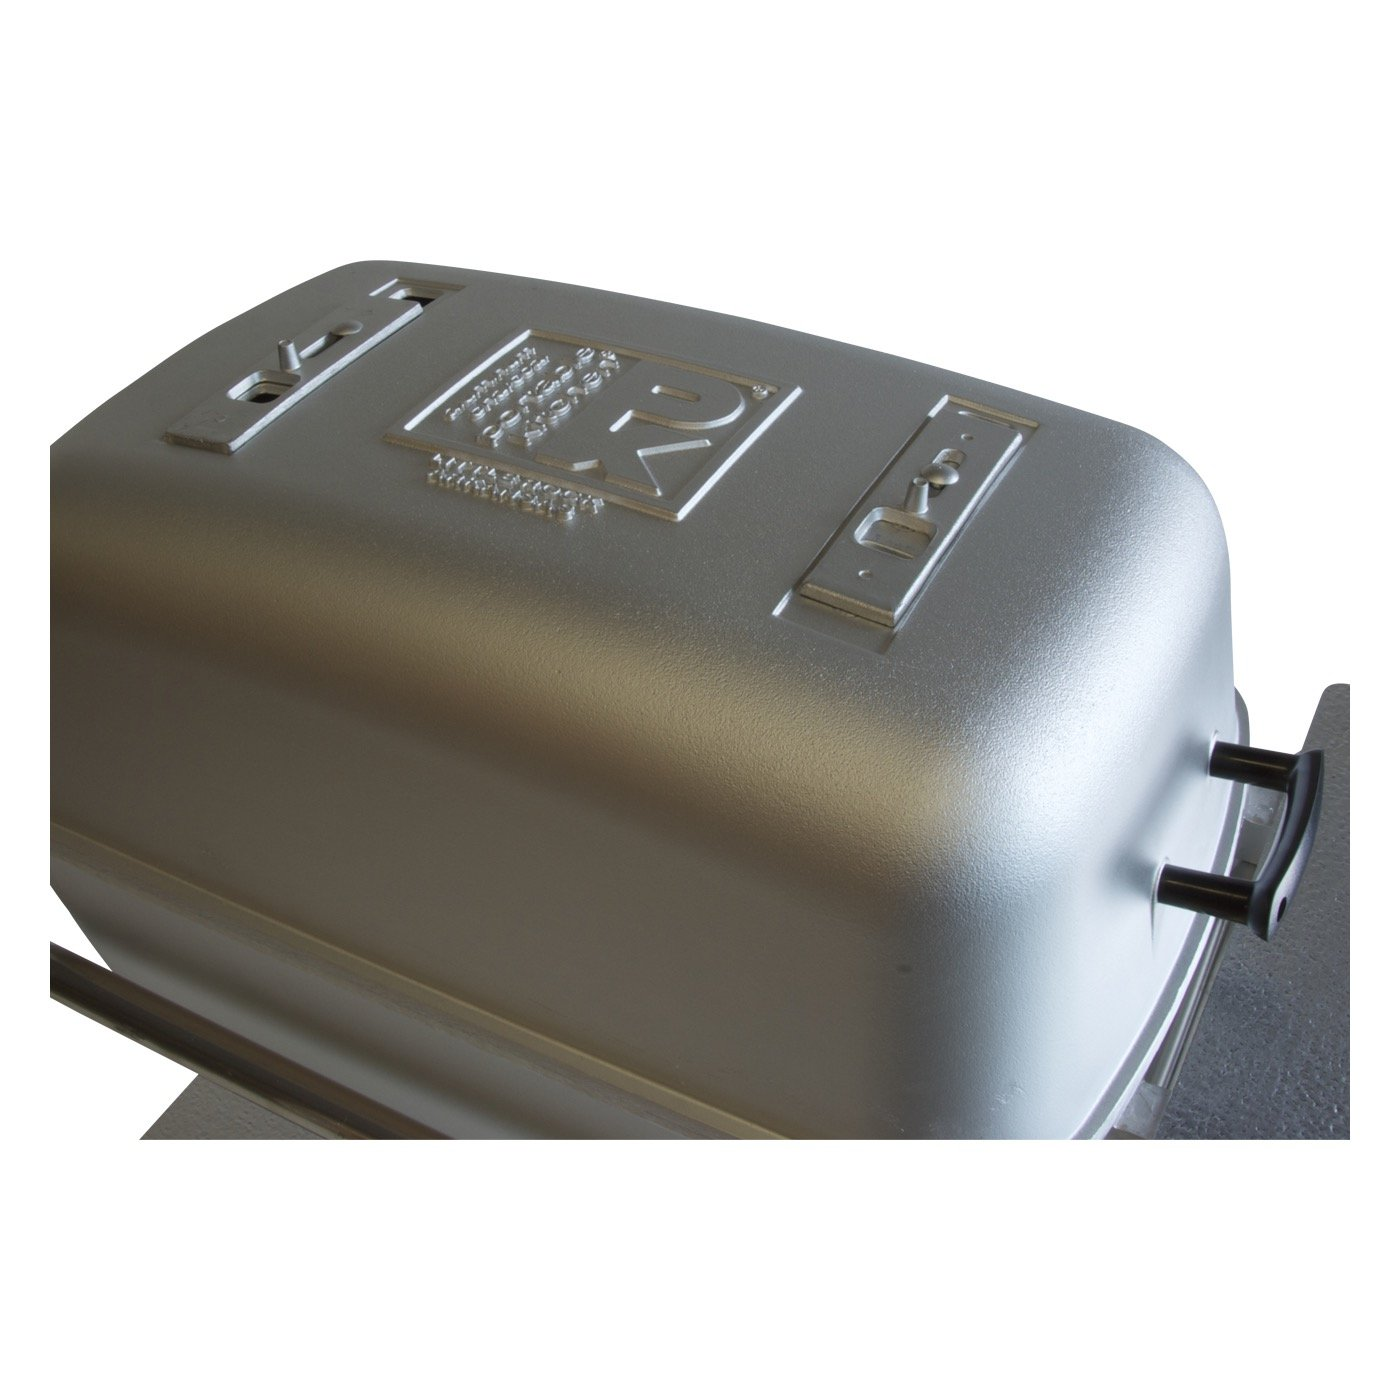 PK Grills The Original PK Grill & Smoker, Classic Silver (PK99740) by PK Grill (Image #3)